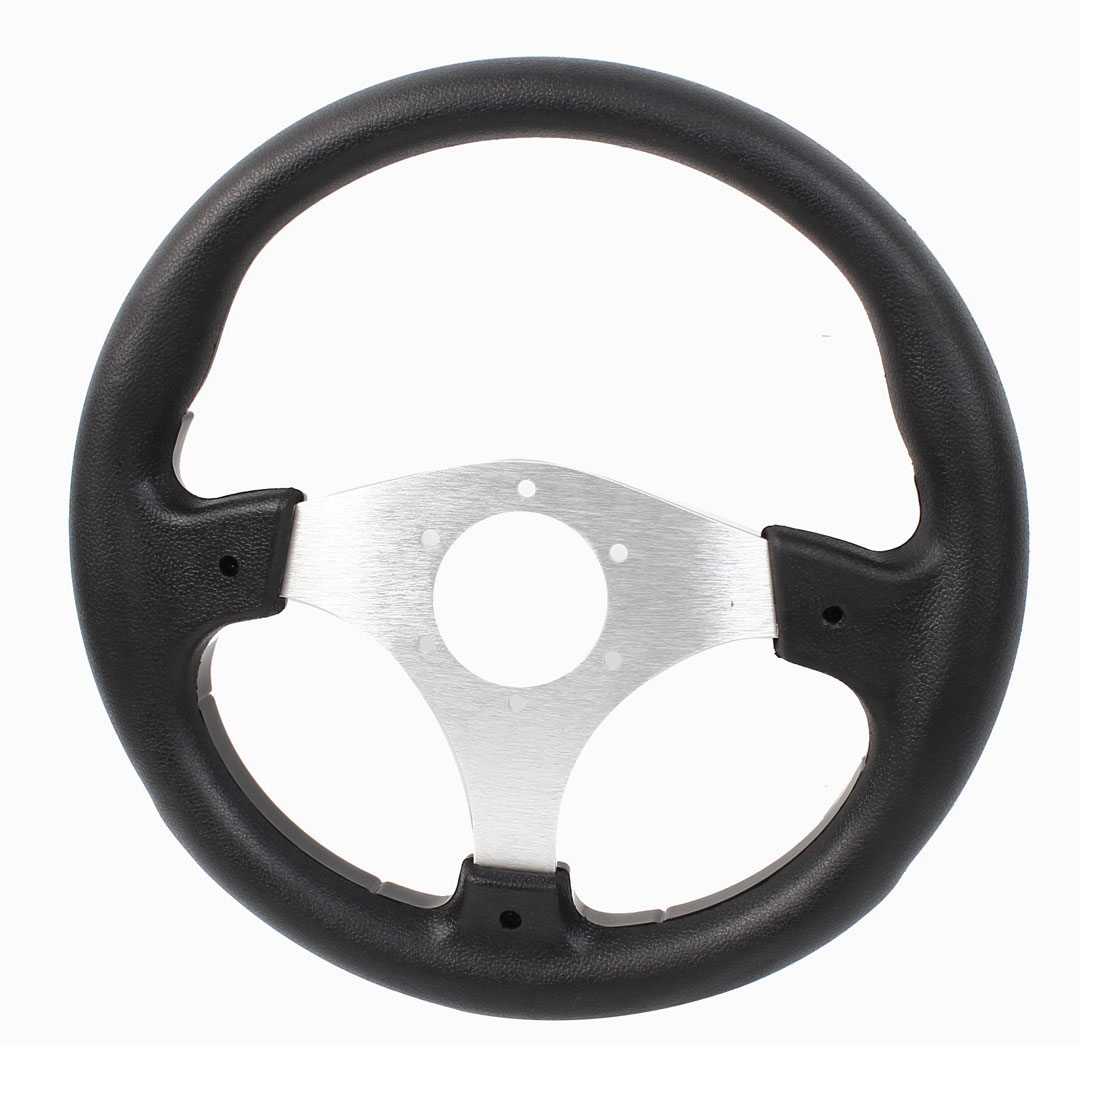 32cm Dia Black Faux Leather Plastic Metal Wrapped Steering Wheel for Car